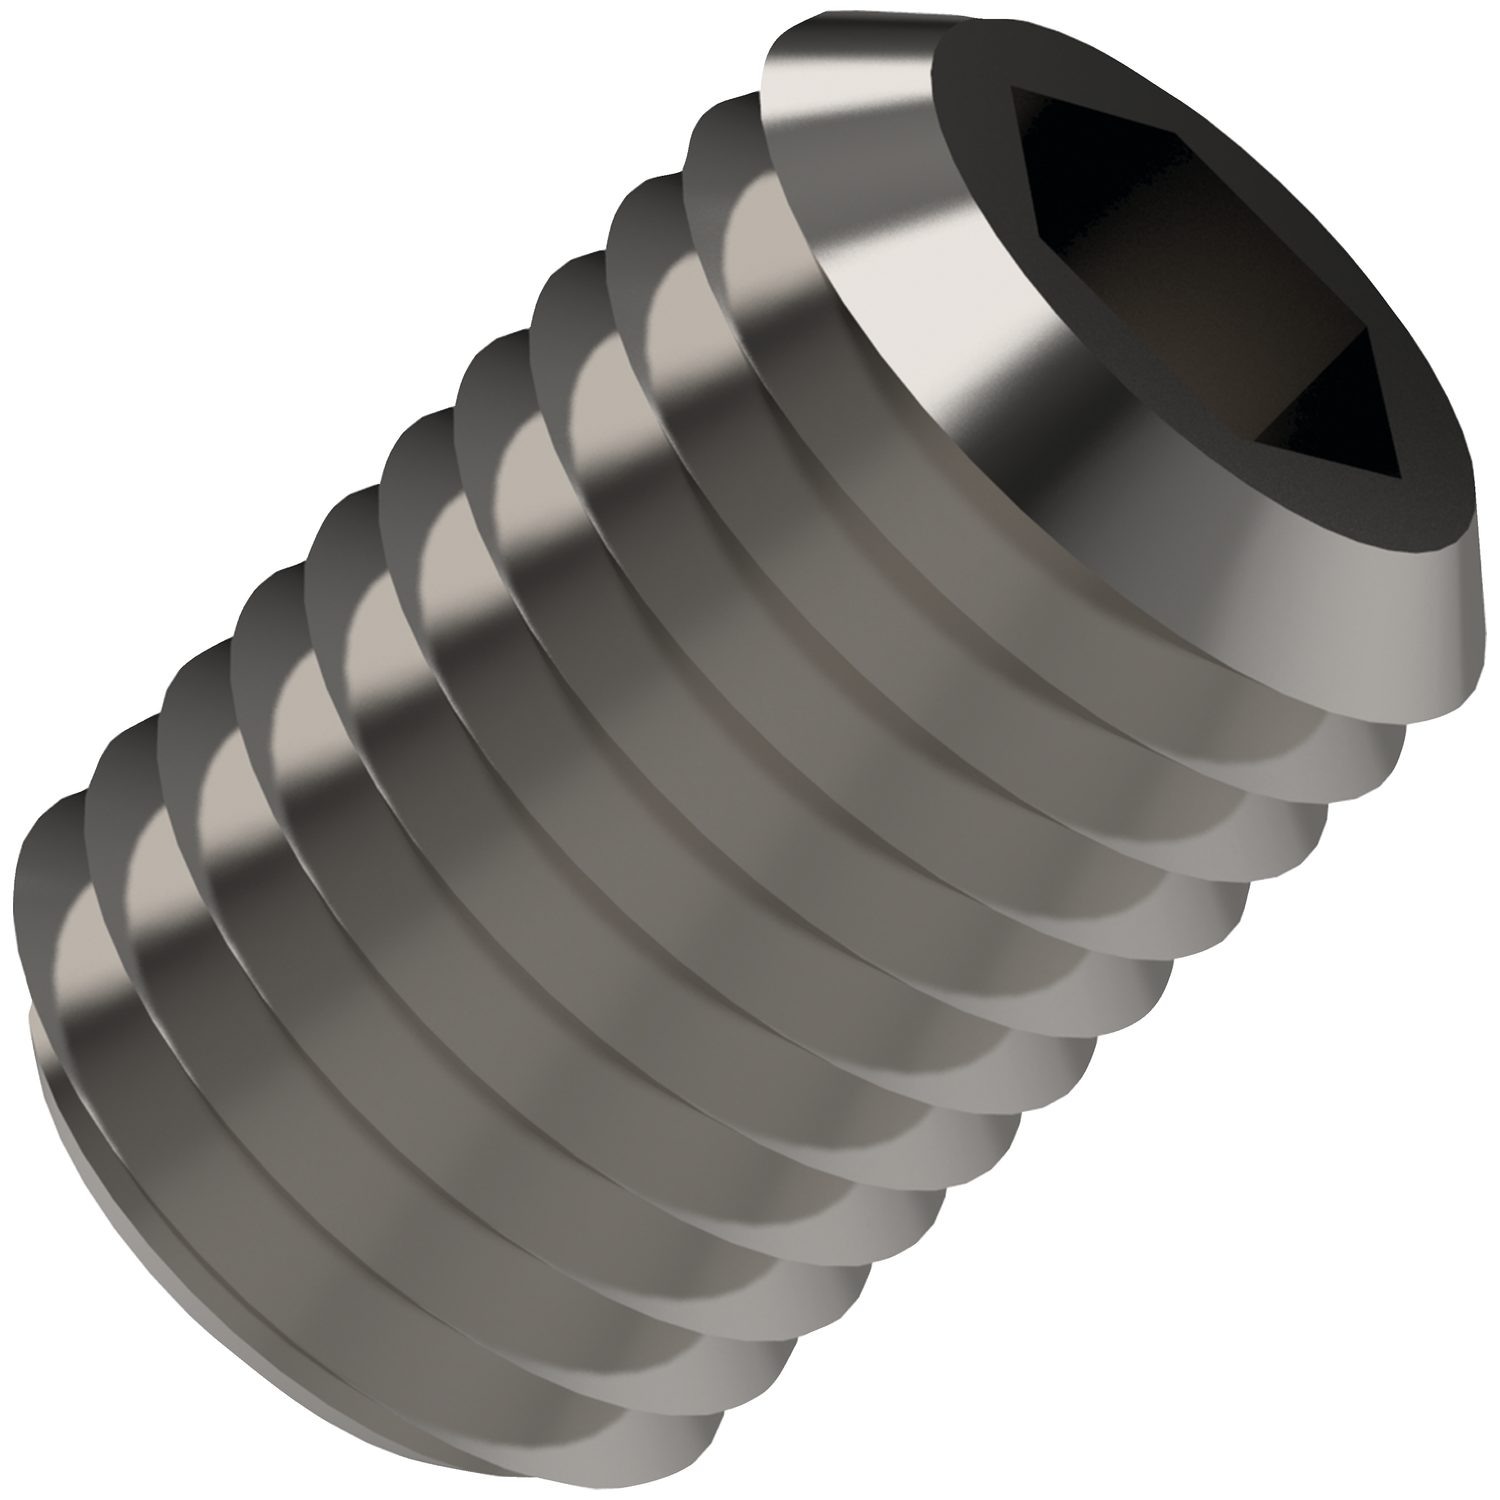 P0270 - Socket Set Screws Cup Point